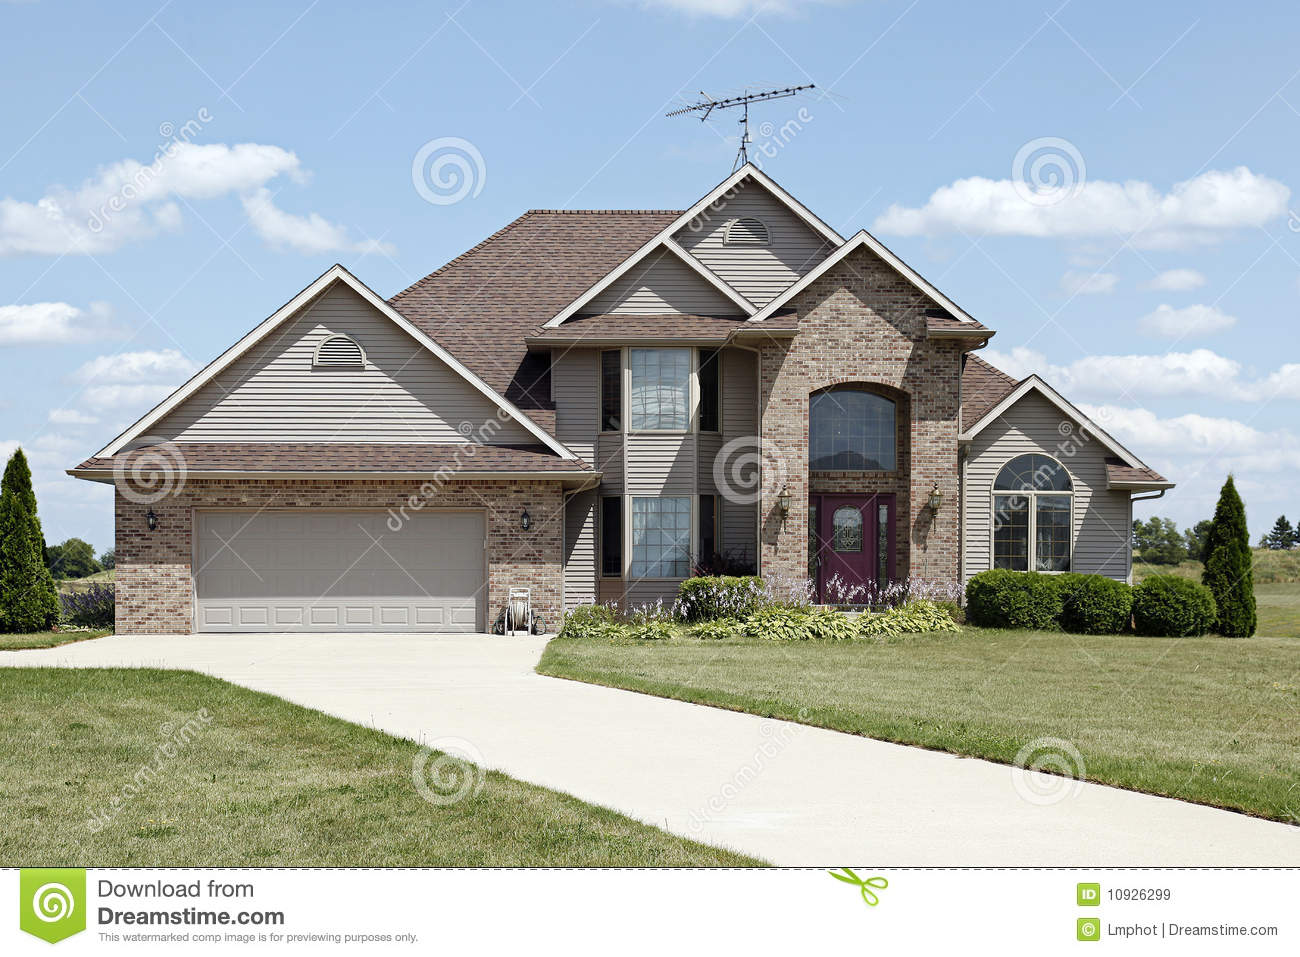 Brick Home With Arched Entryway Royalty Free Stock Images - Image